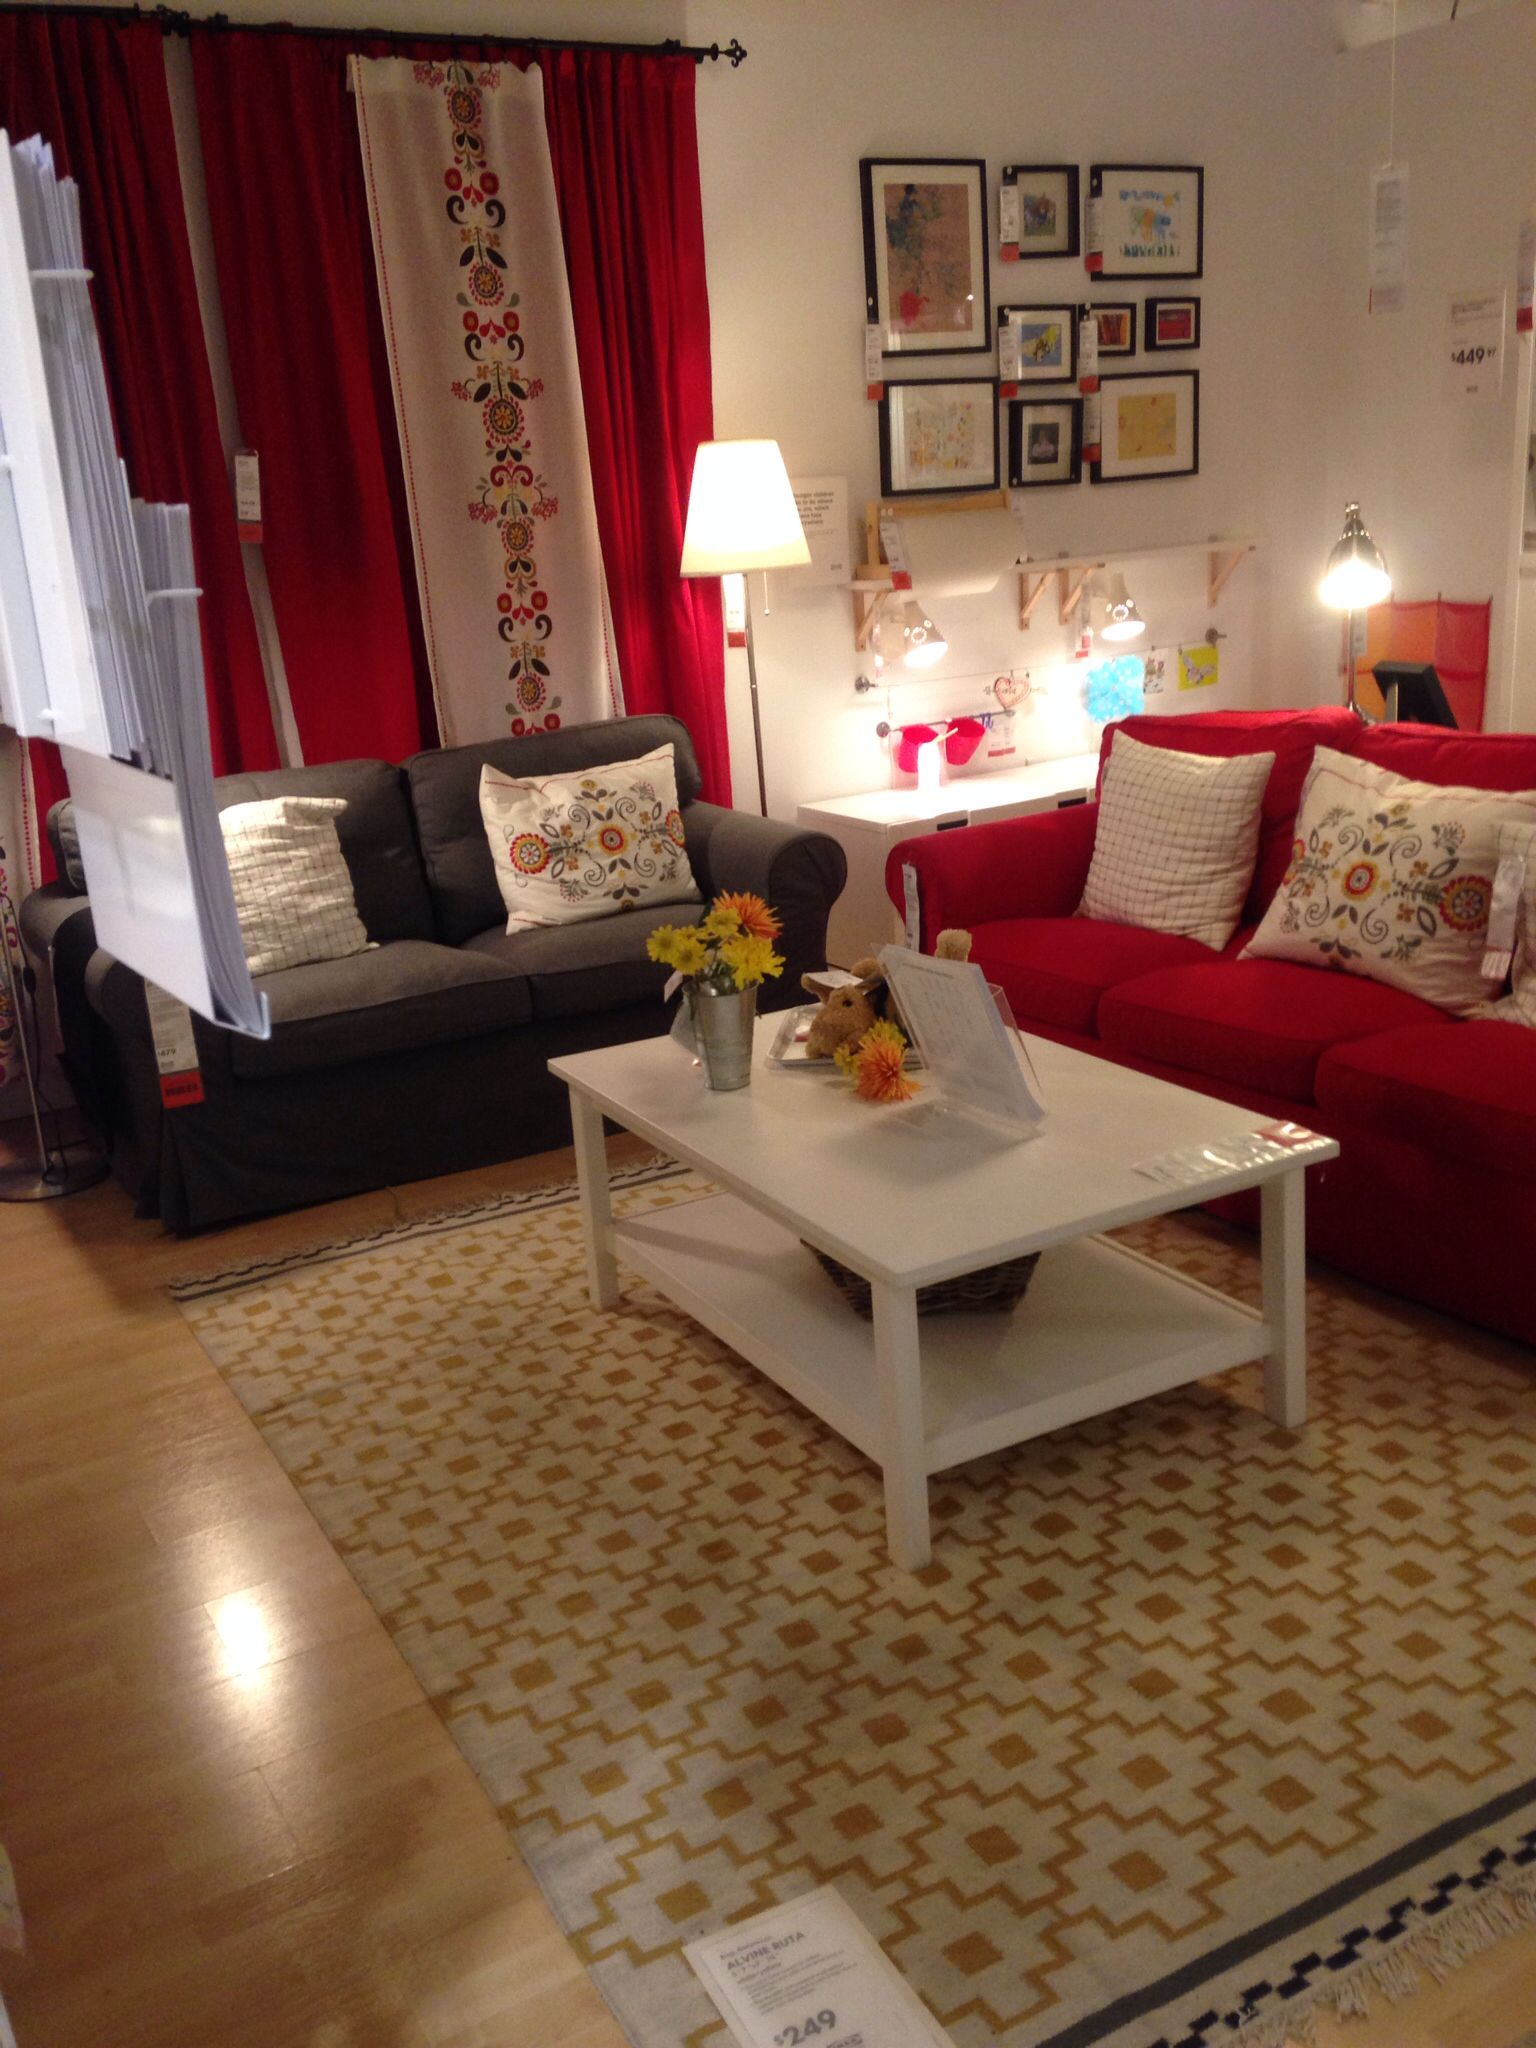 Pin by Rozeen Muasher on living rooms  Living room red, Red couch